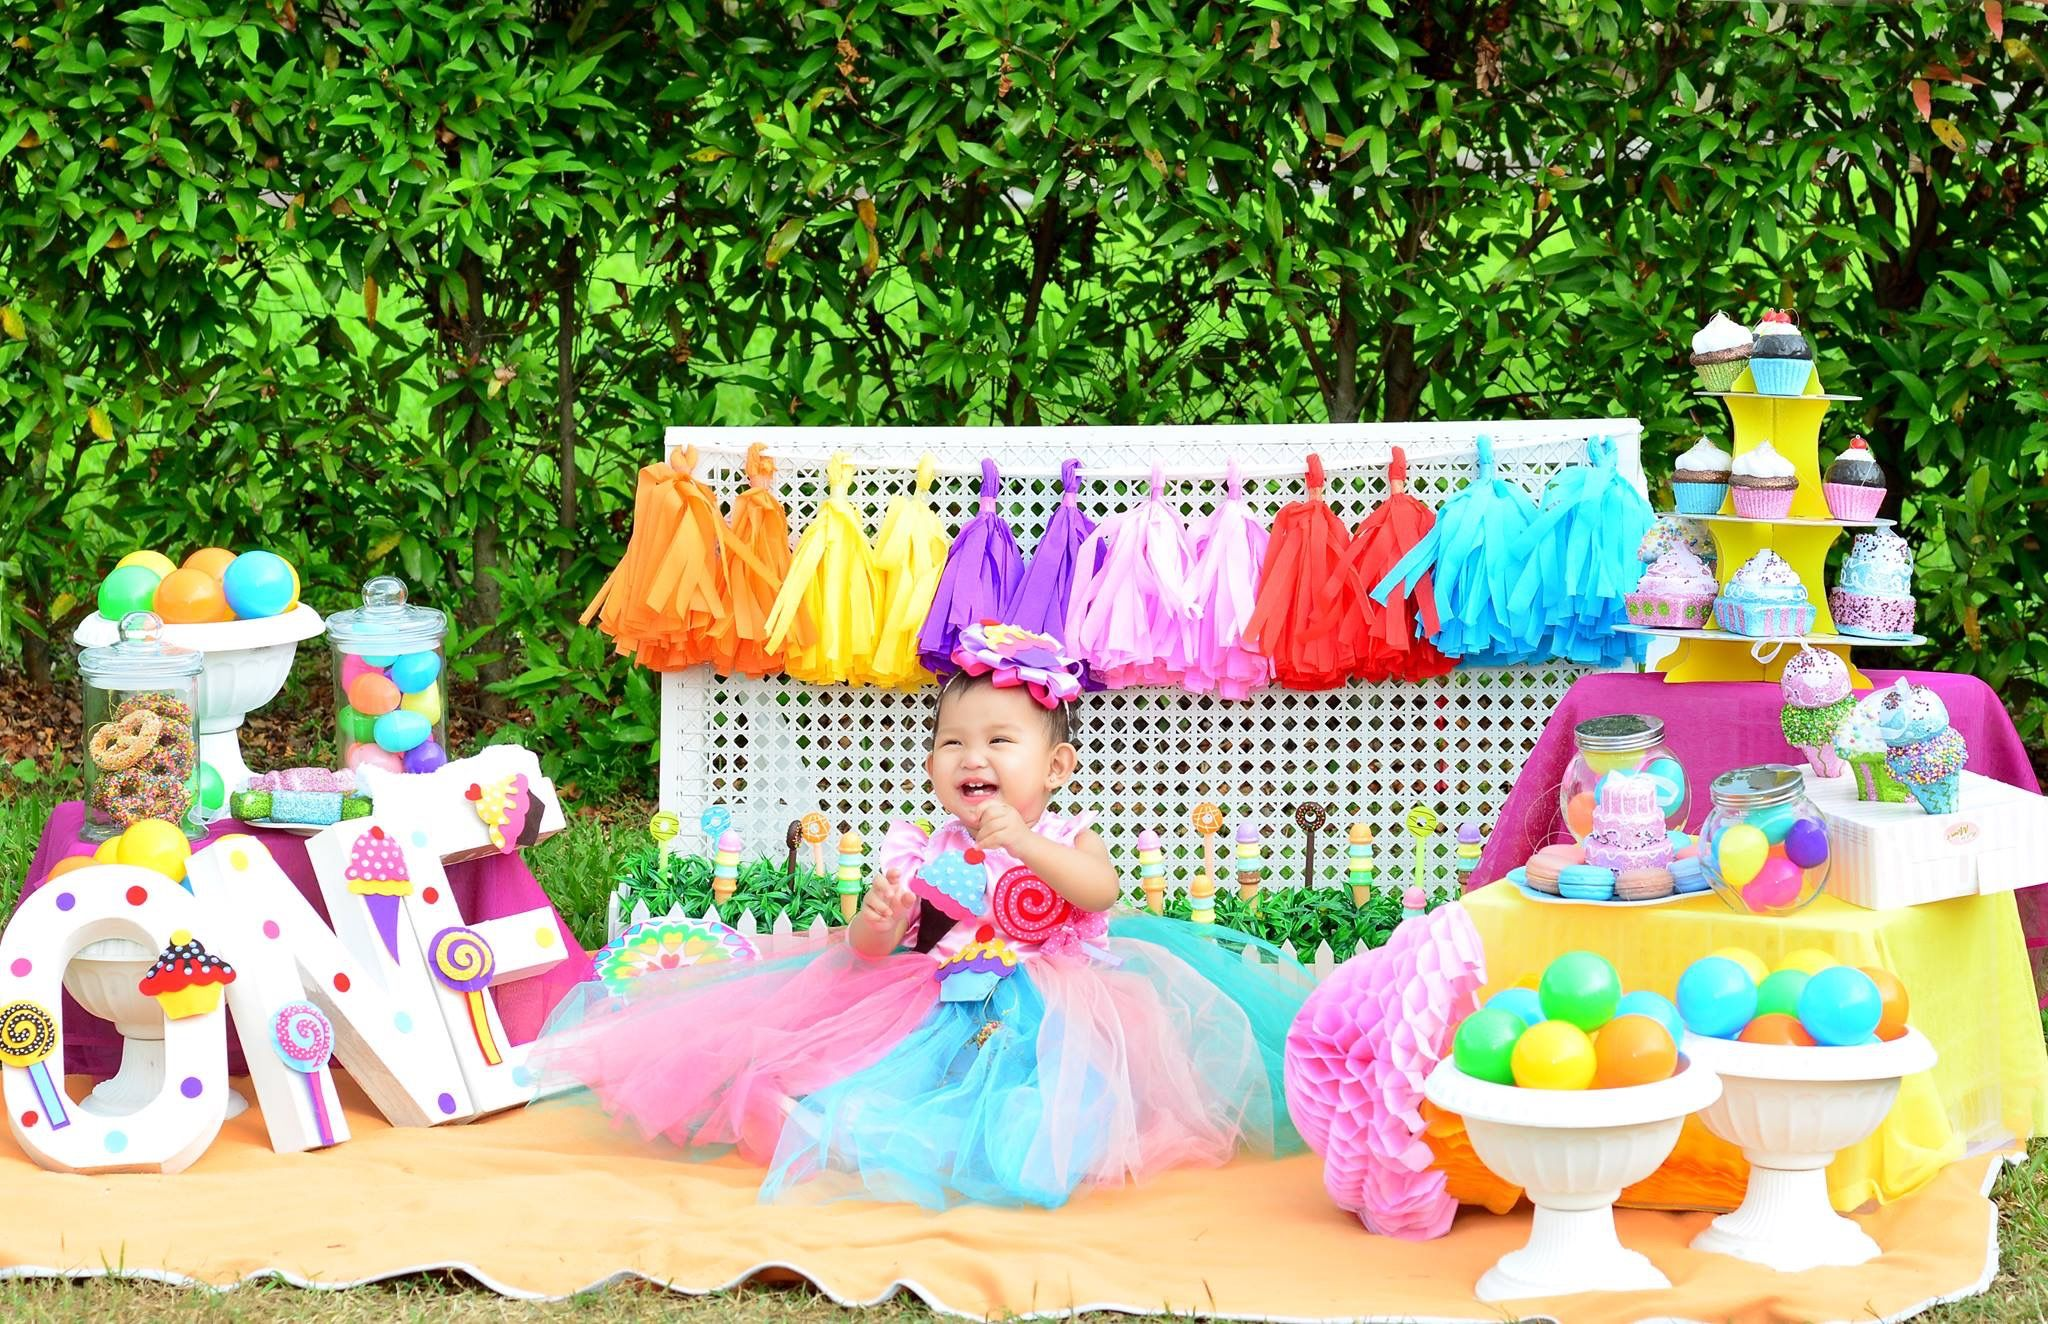 Candyland Diy Photoshoot Candy Land Birthday Party Candyland Birthday Candy Photoshoot